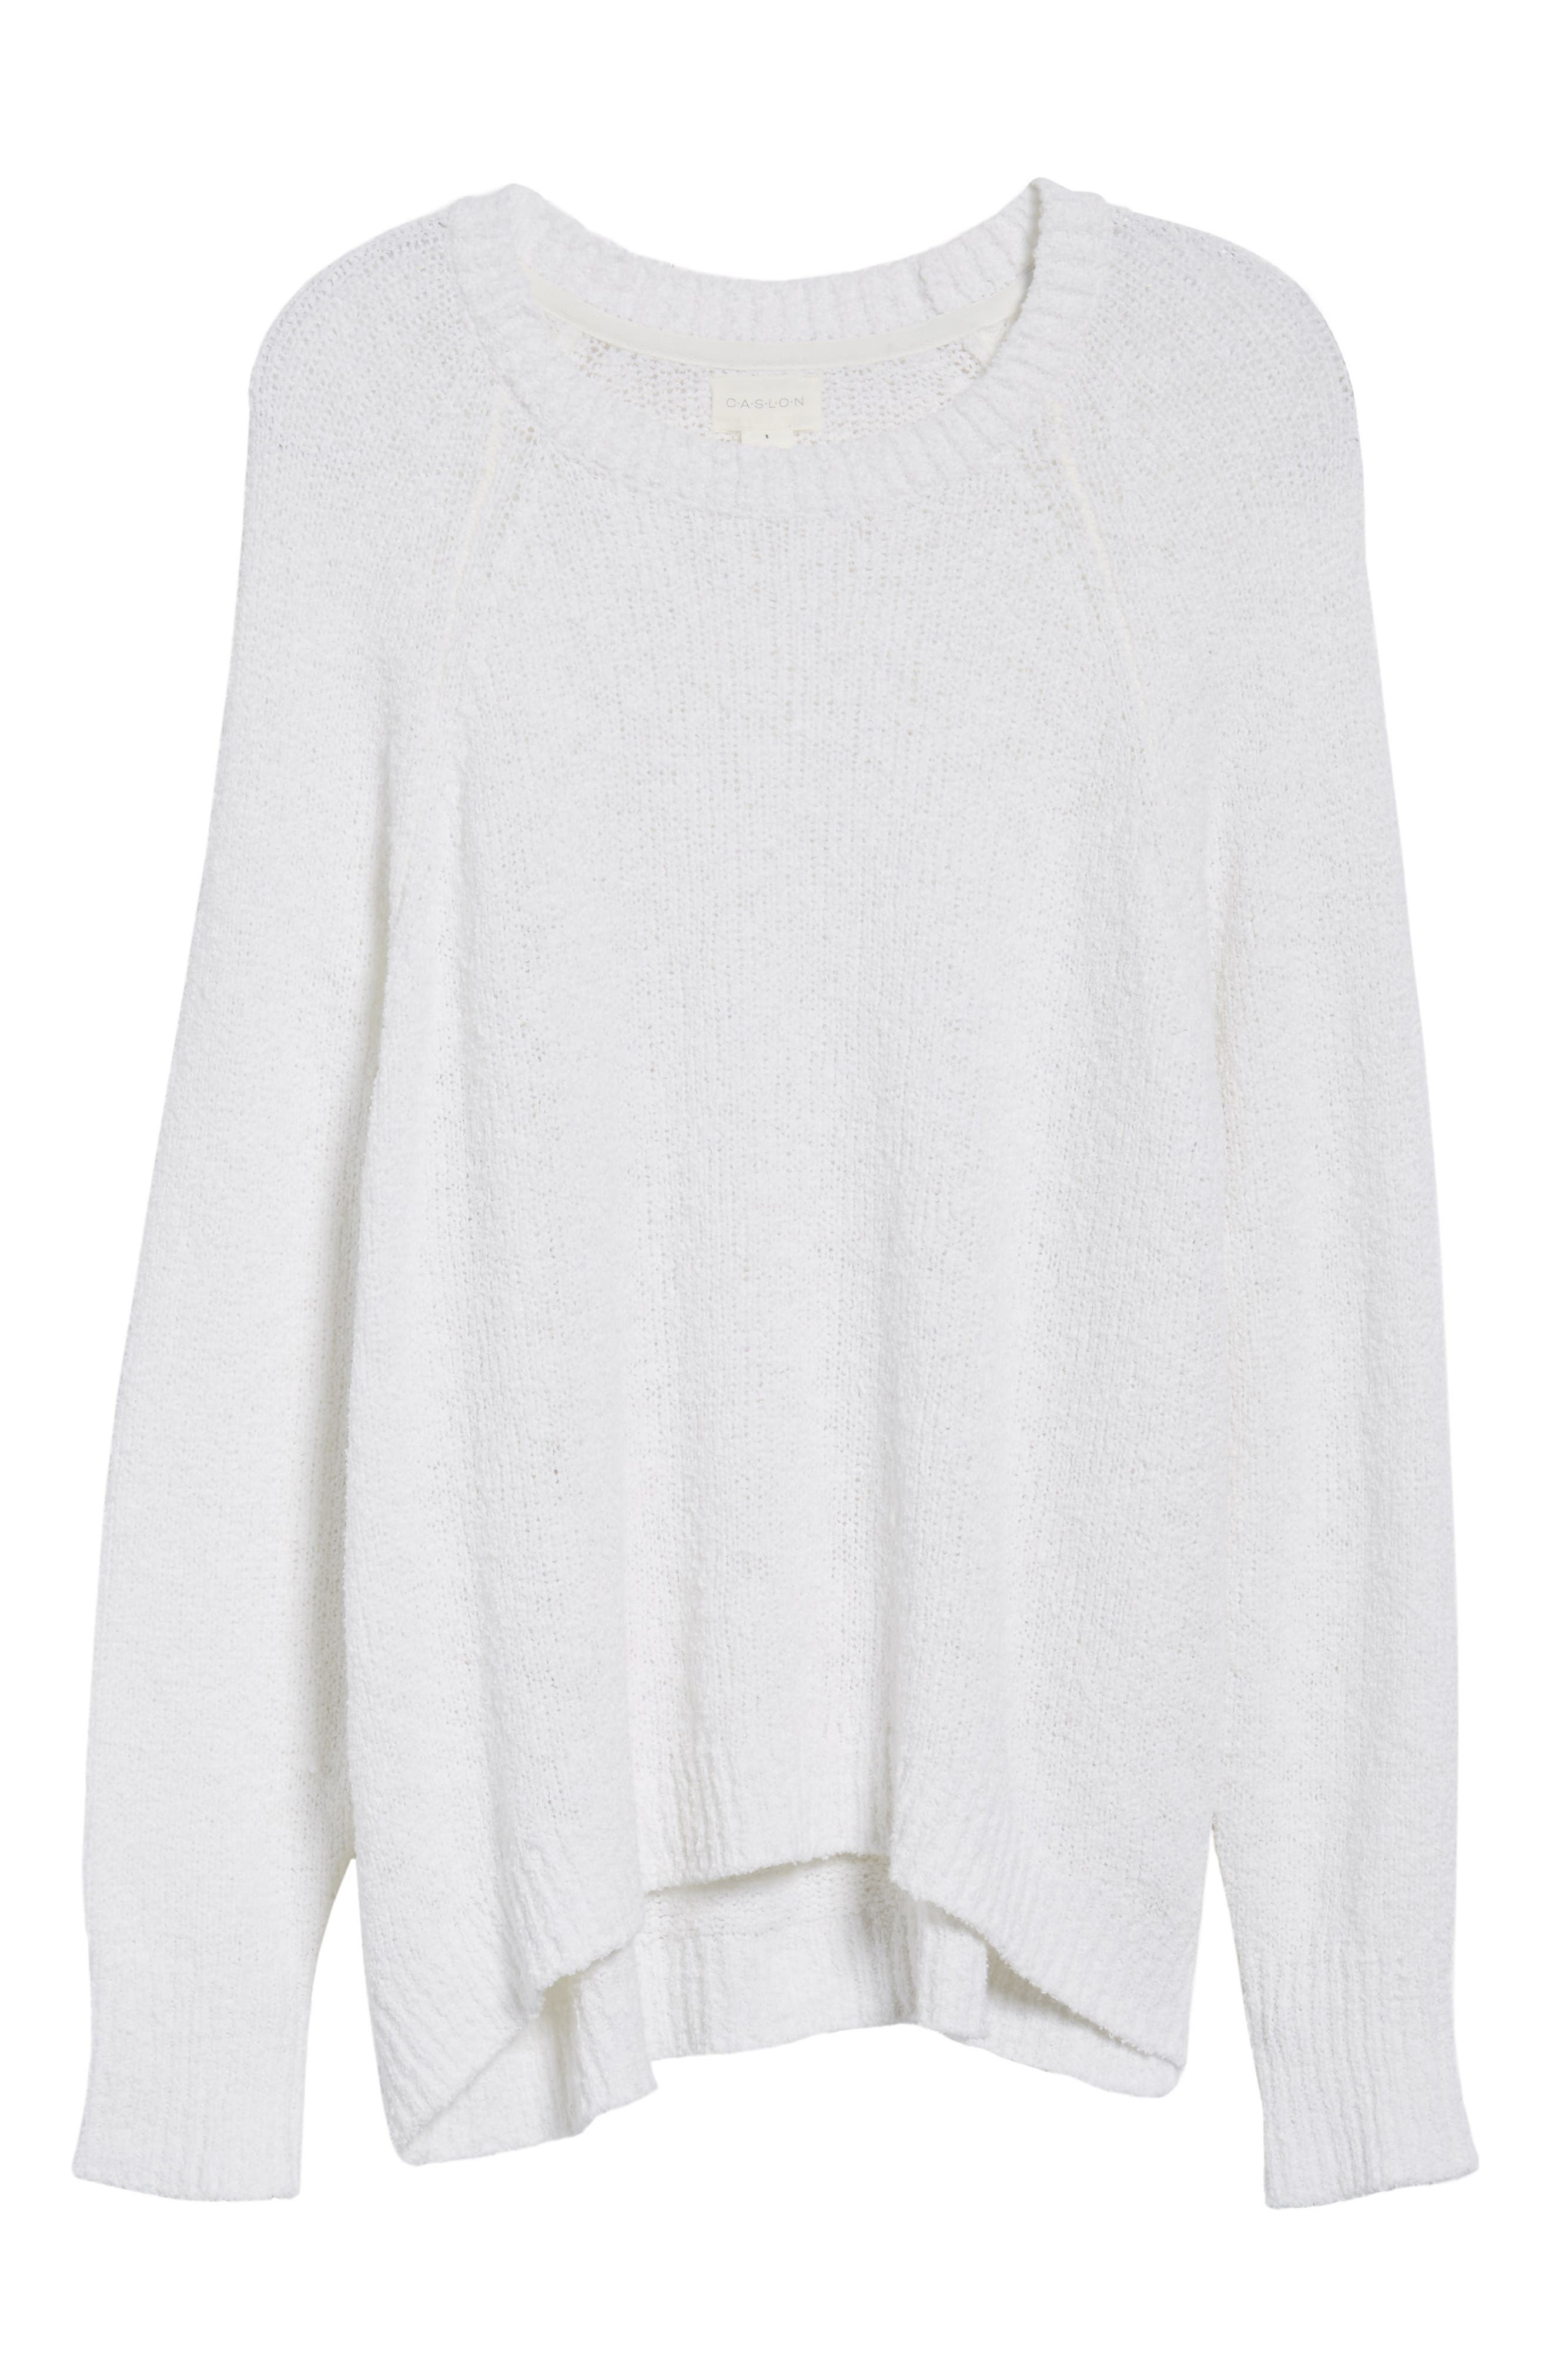 Relaxed Crewneck Sweater,                             Alternate thumbnail 6, color,                             100